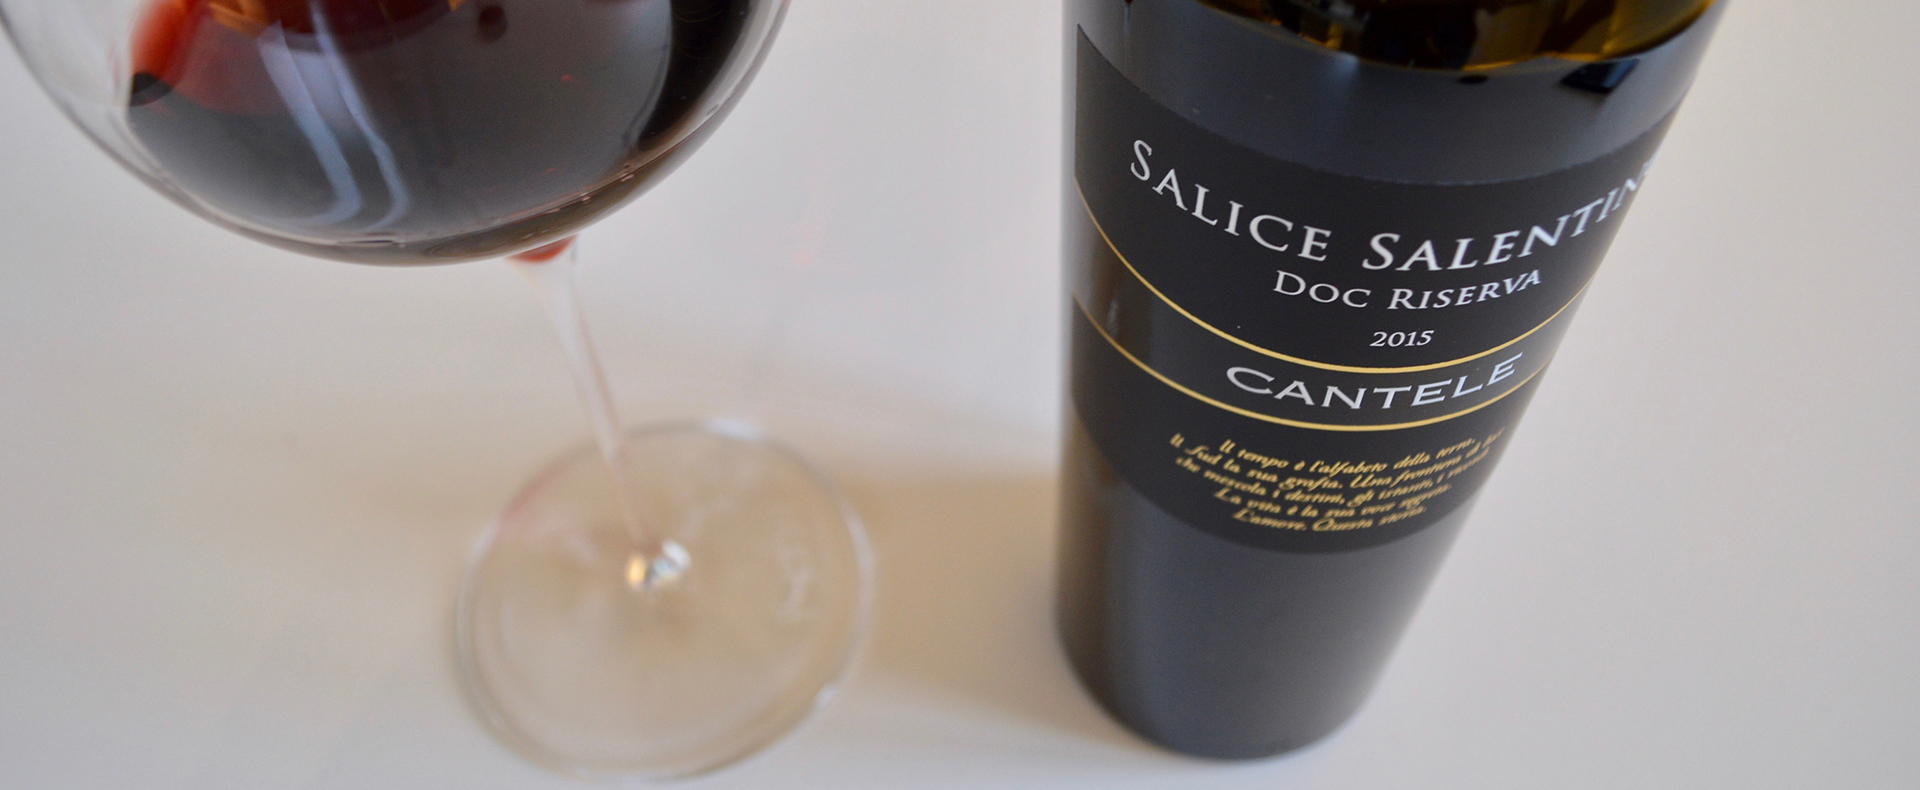 Wine Folly —the number one wine blog in the world —recommends Cantele Salice Salentino